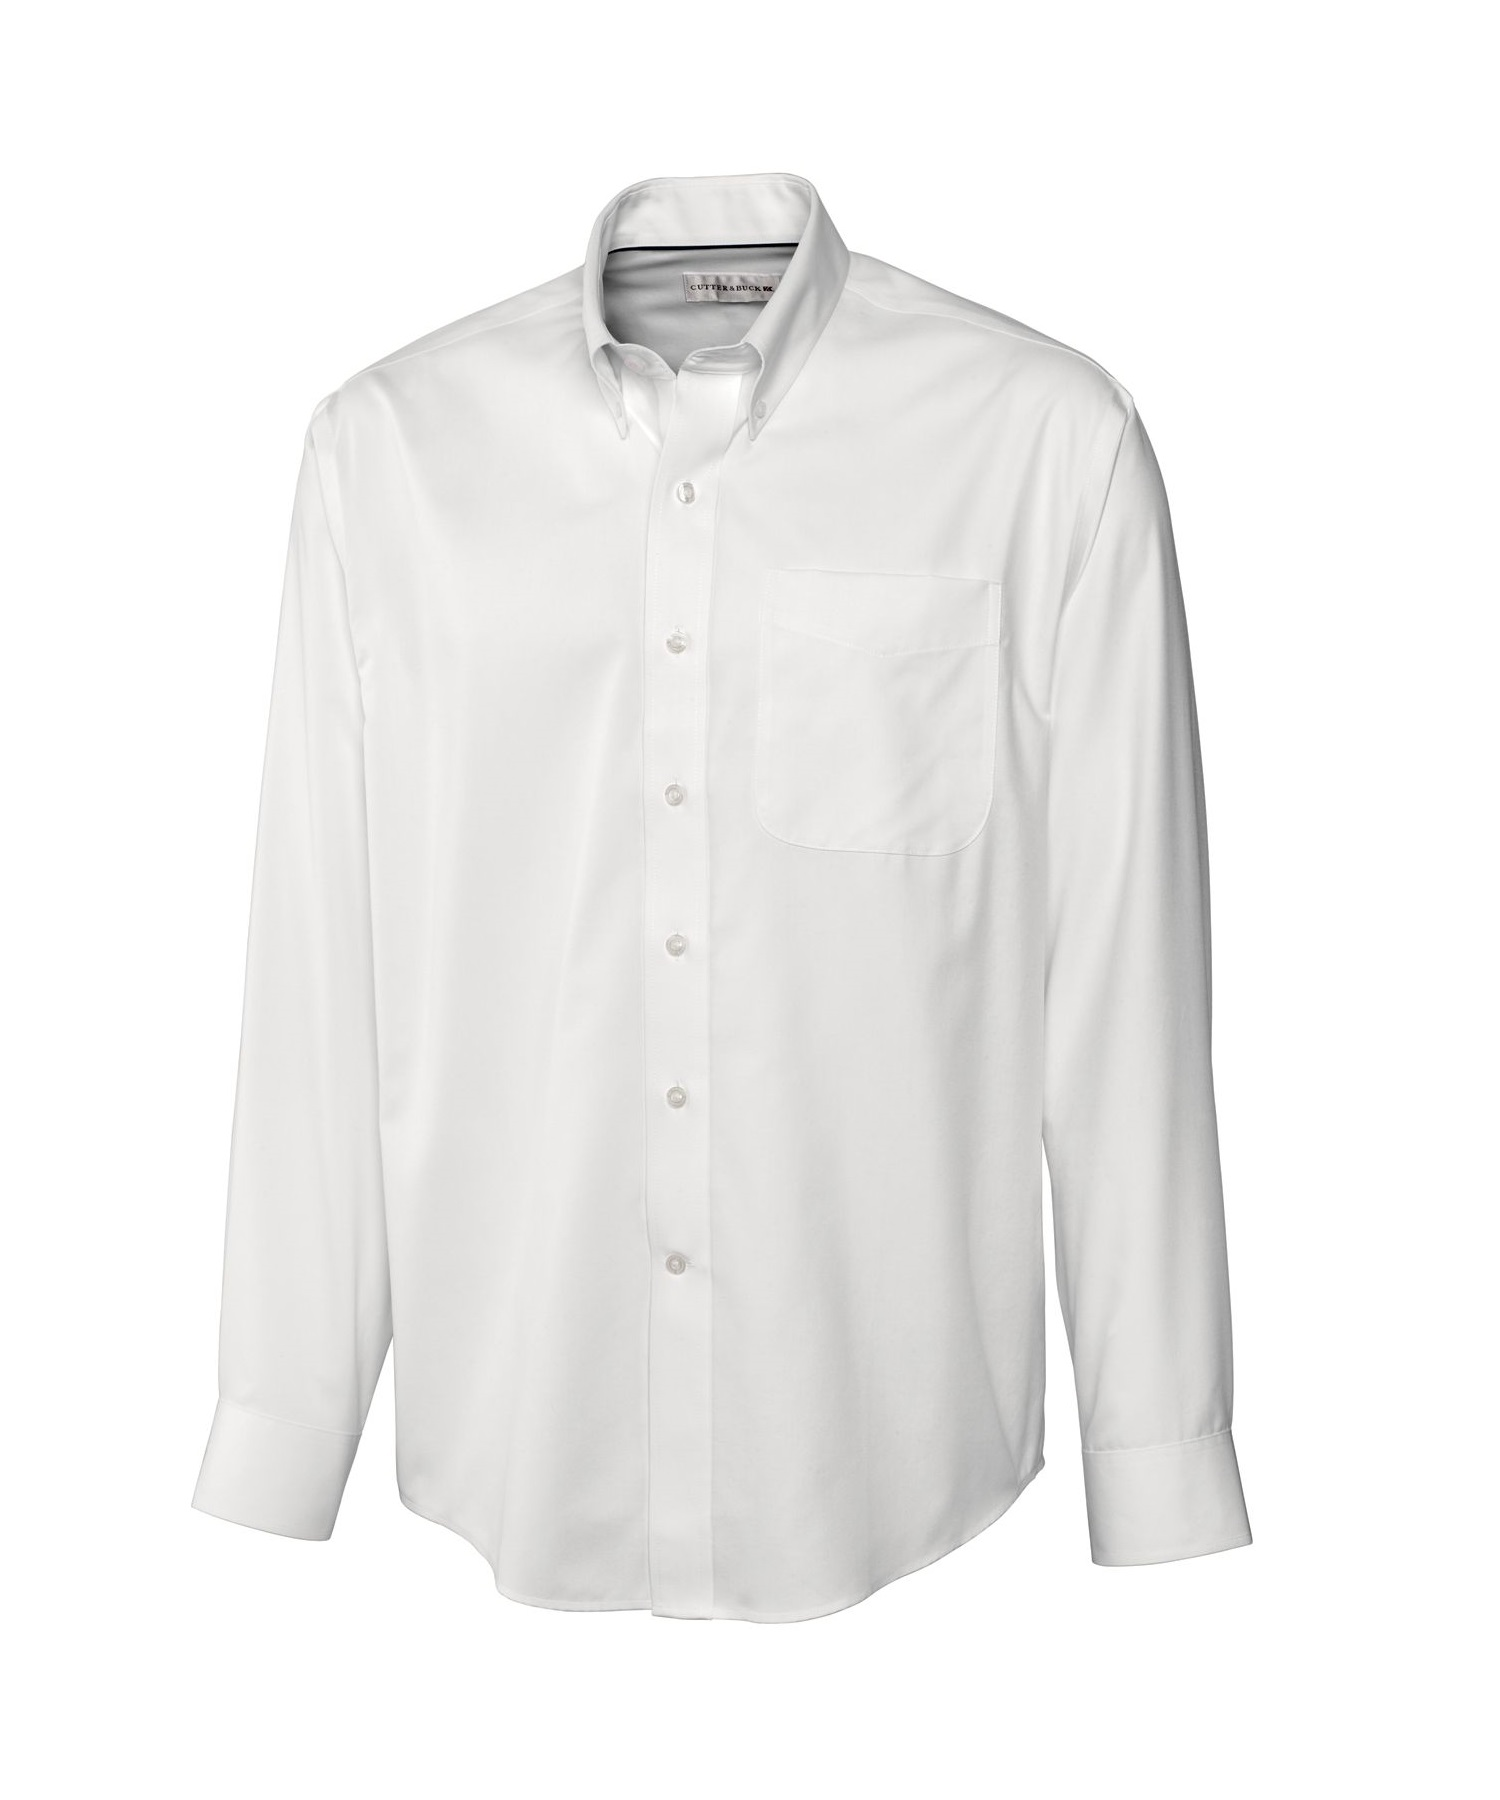 34b443348e7 Epic Easy Care Fine Twill White Long Sleeve Dress Shirt - Cutter & Buck